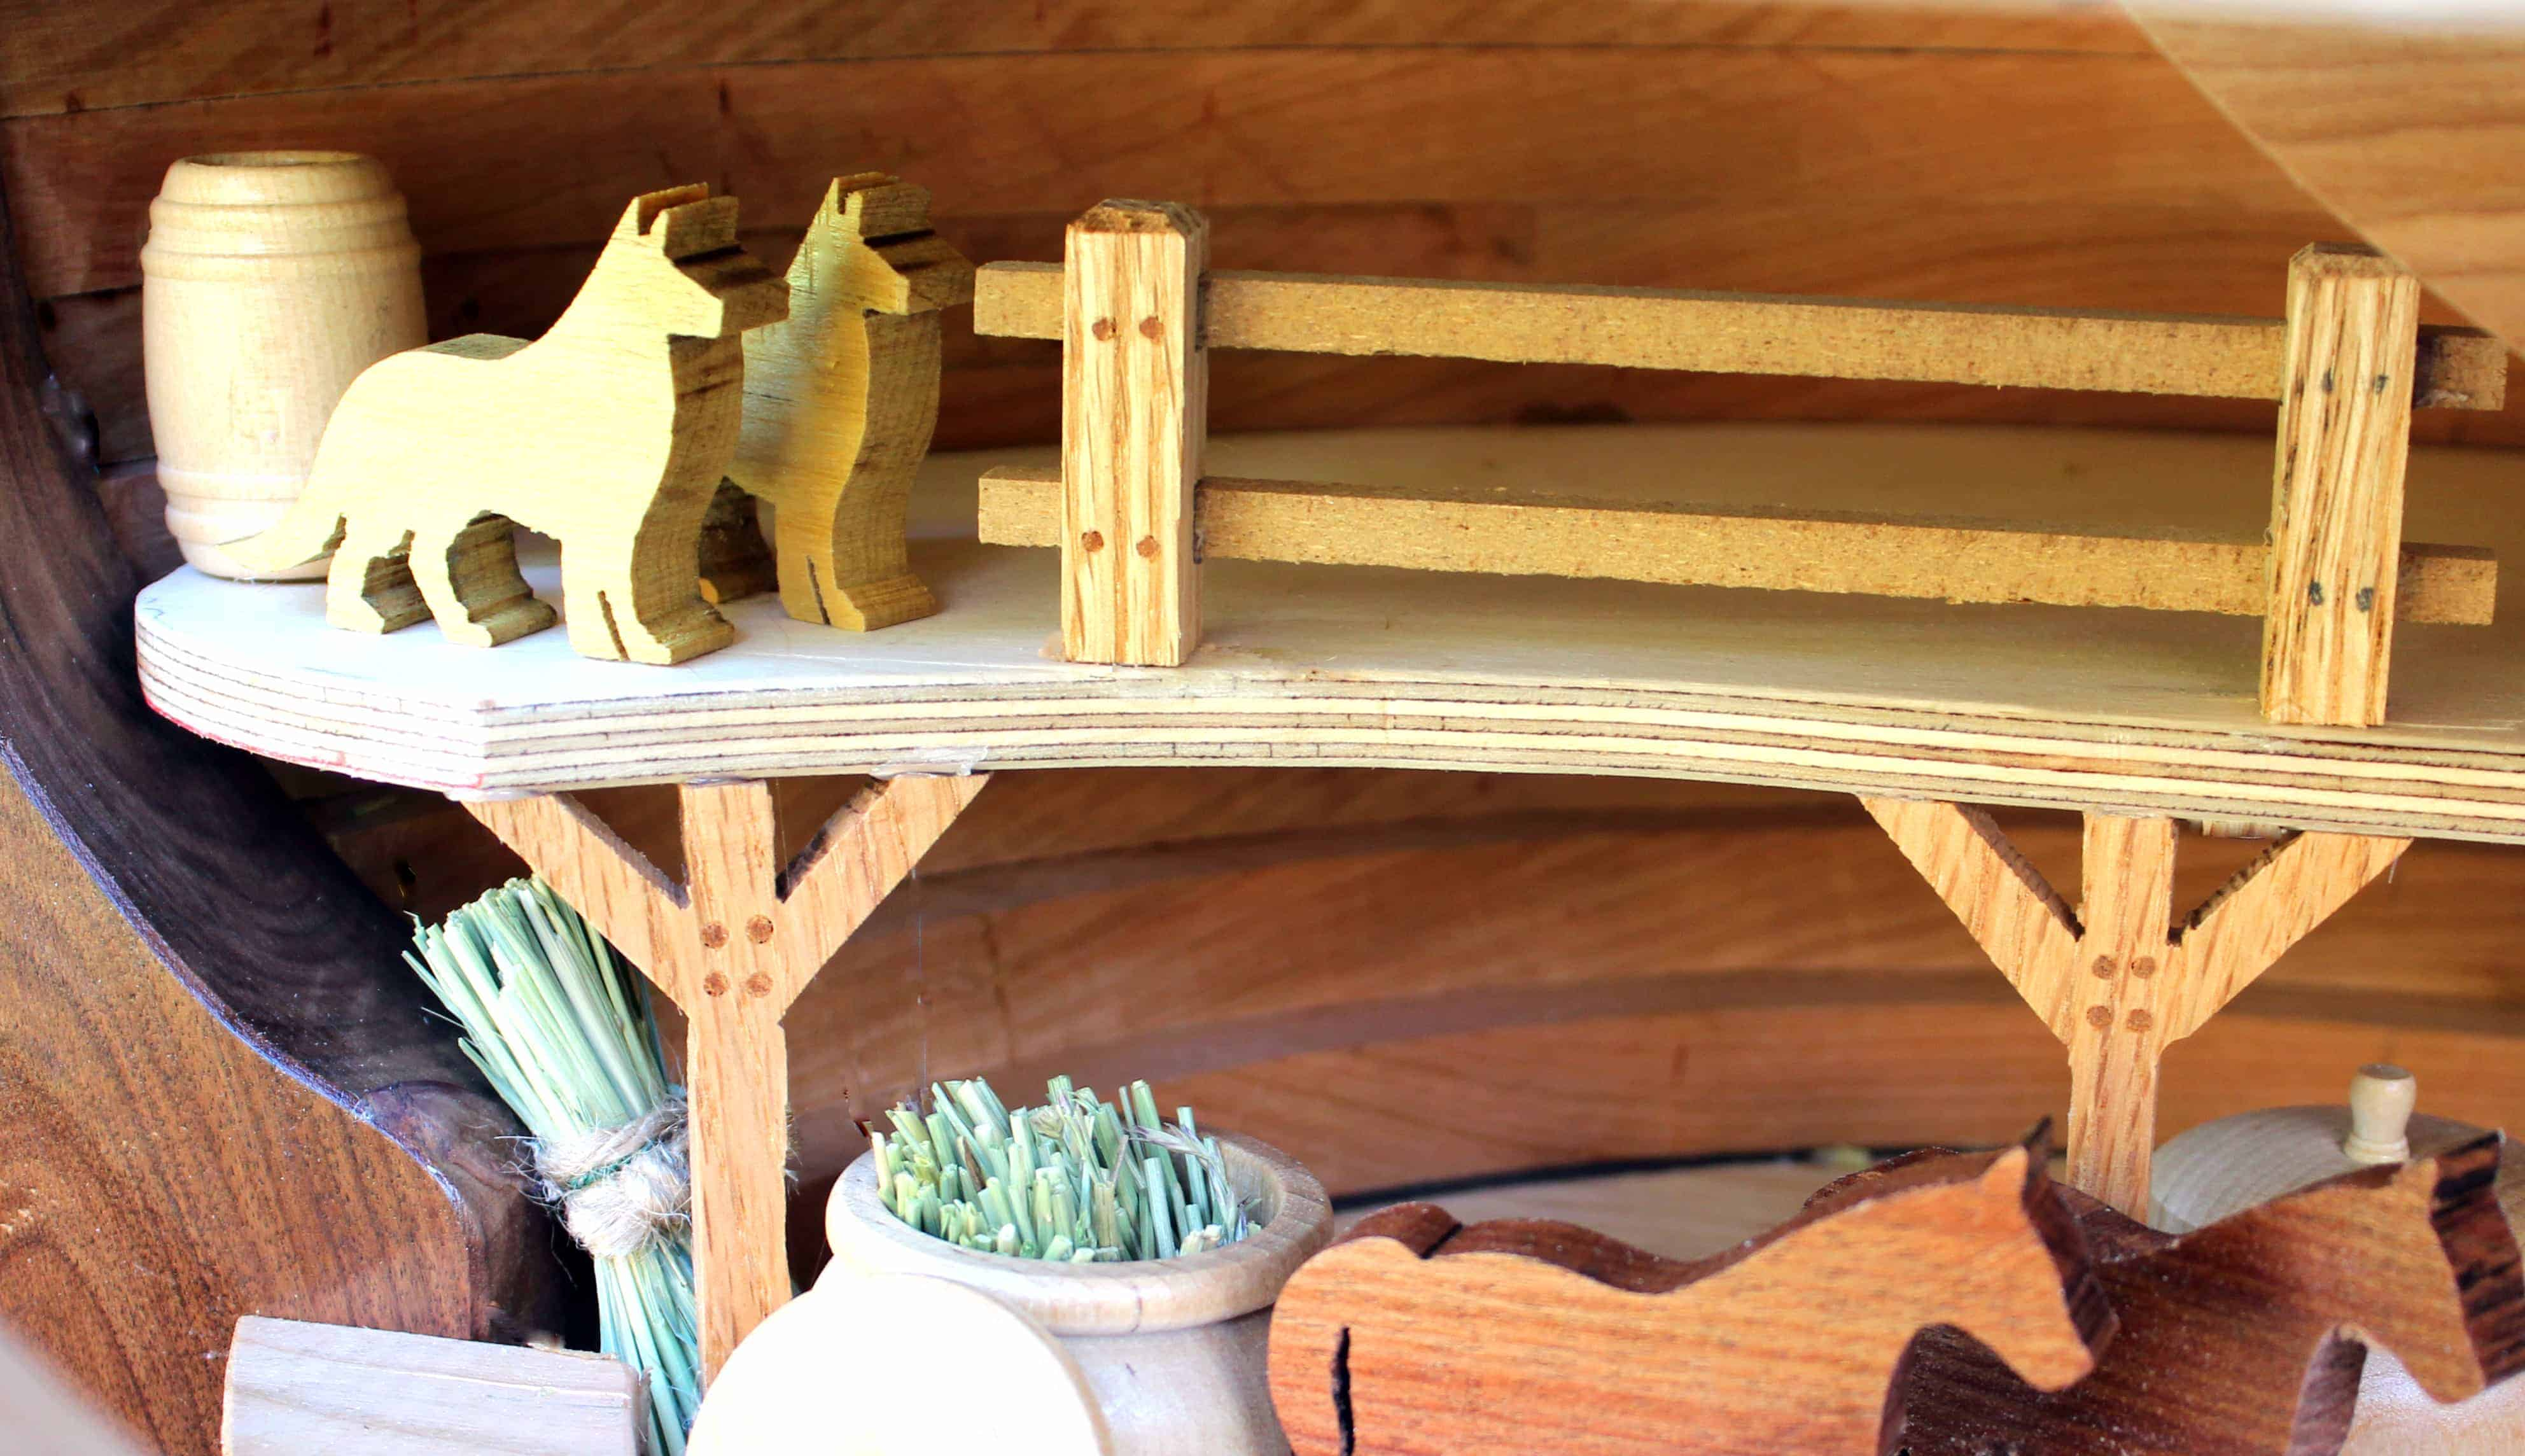 Noah's Ark Woodworking Plan - Forest Street Designs